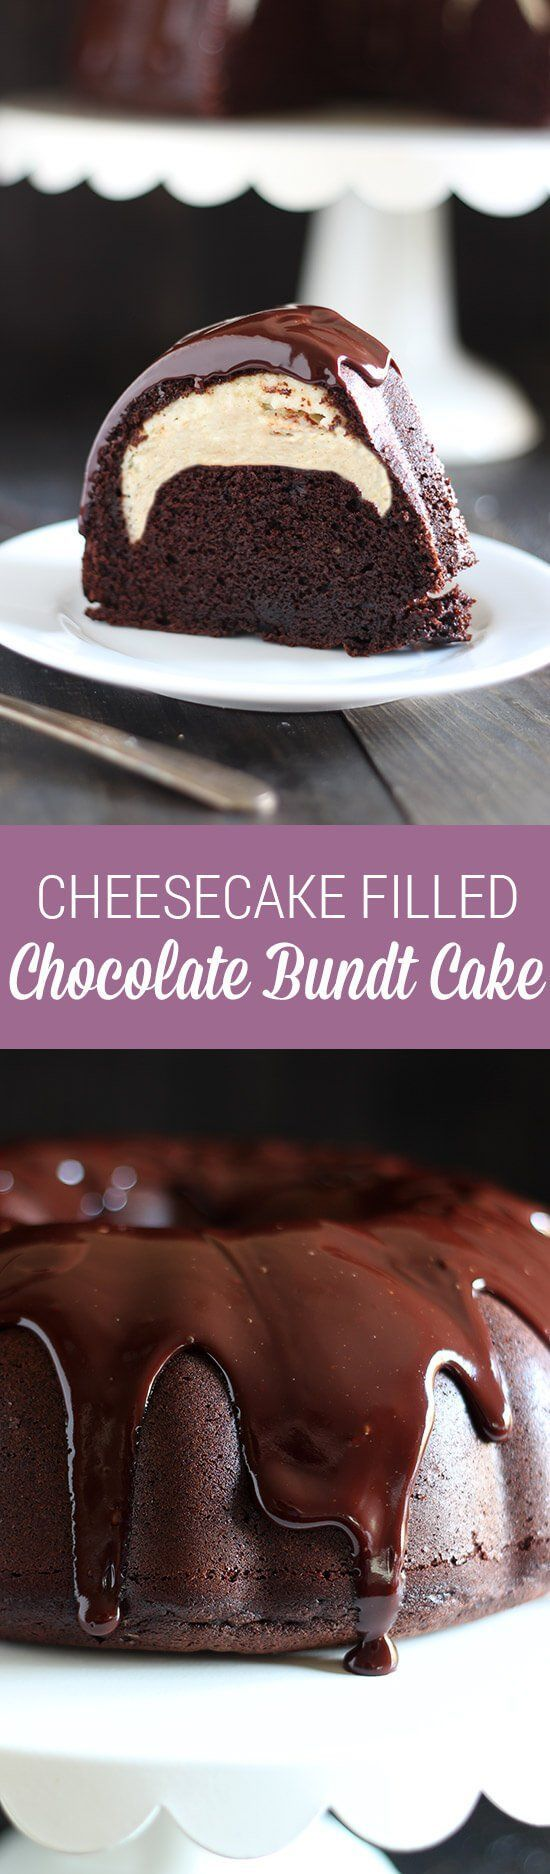 brand shoes online uk Who could beat this Cheesecake Filled Chocolate Bundt Cake with its rich yet tender chocolate cake  surprise cheesecake filling  and thick fudgy glaze  This recipe is YUM